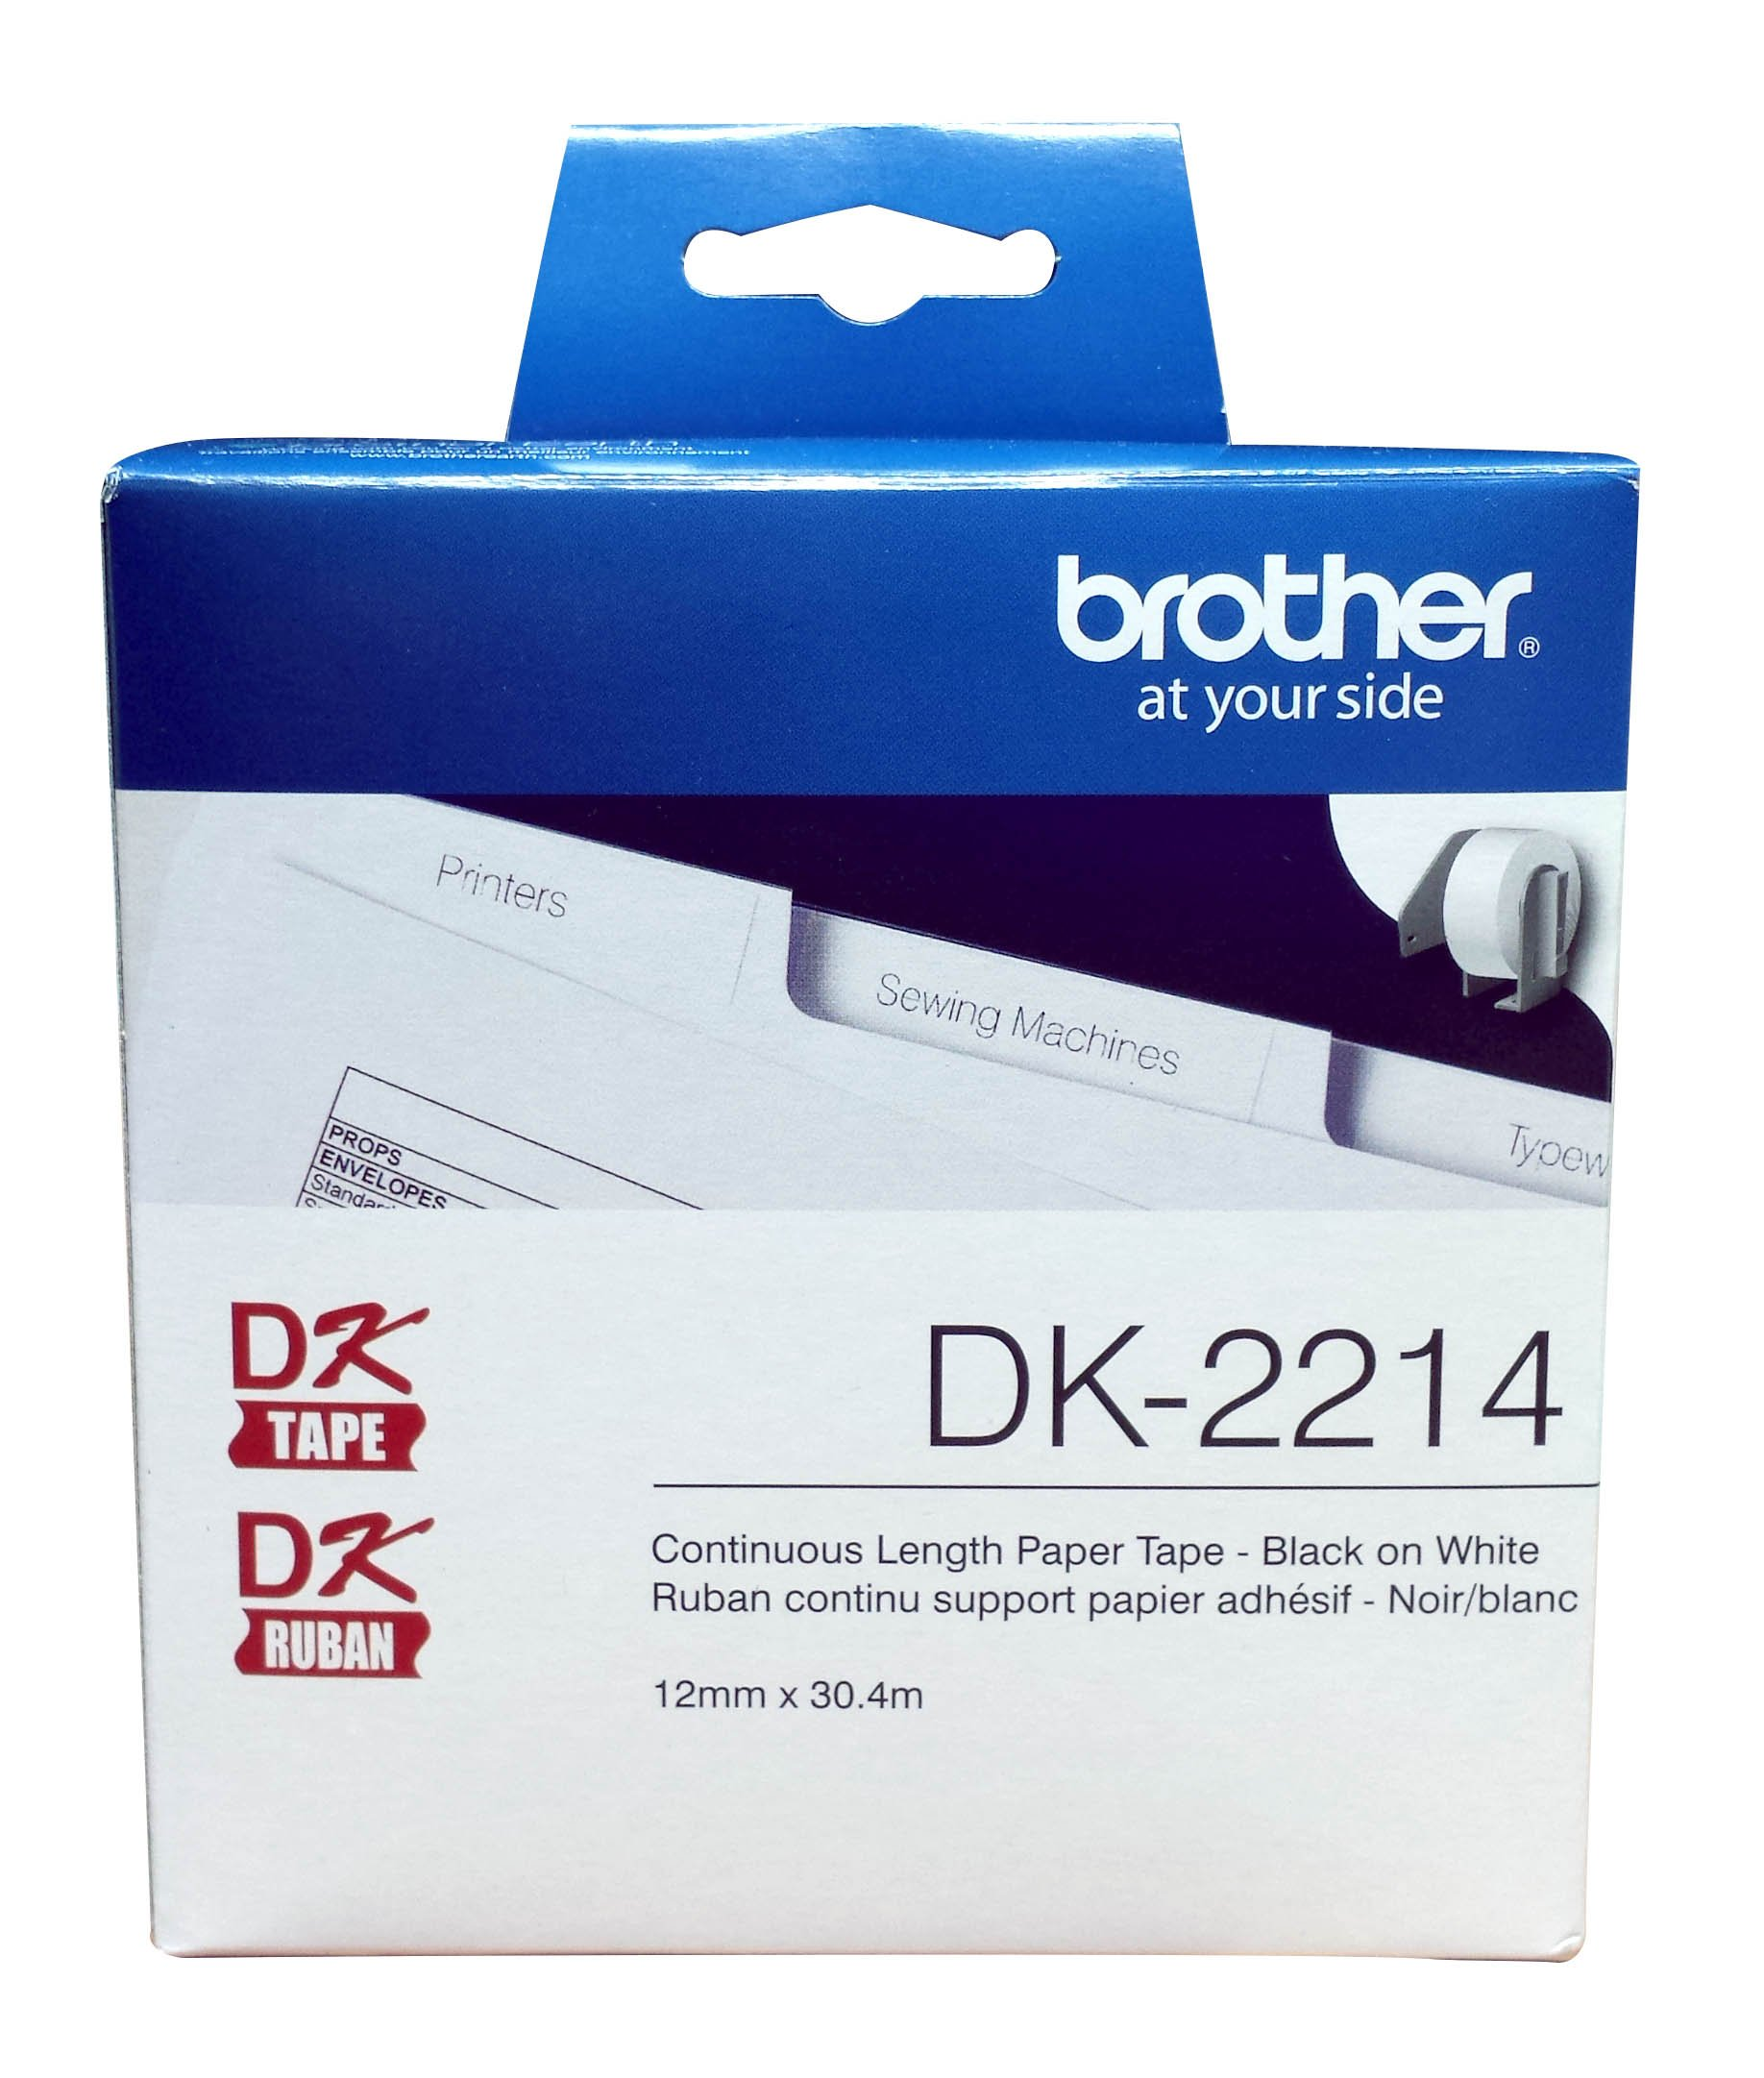 Brother Genuine DK-2214 Continuous Length Black on White Paper Tape for Brother QL Label Printers, 0.47'' x 100' (12mm x 30.4M), 1 Roll per Box, DK2214